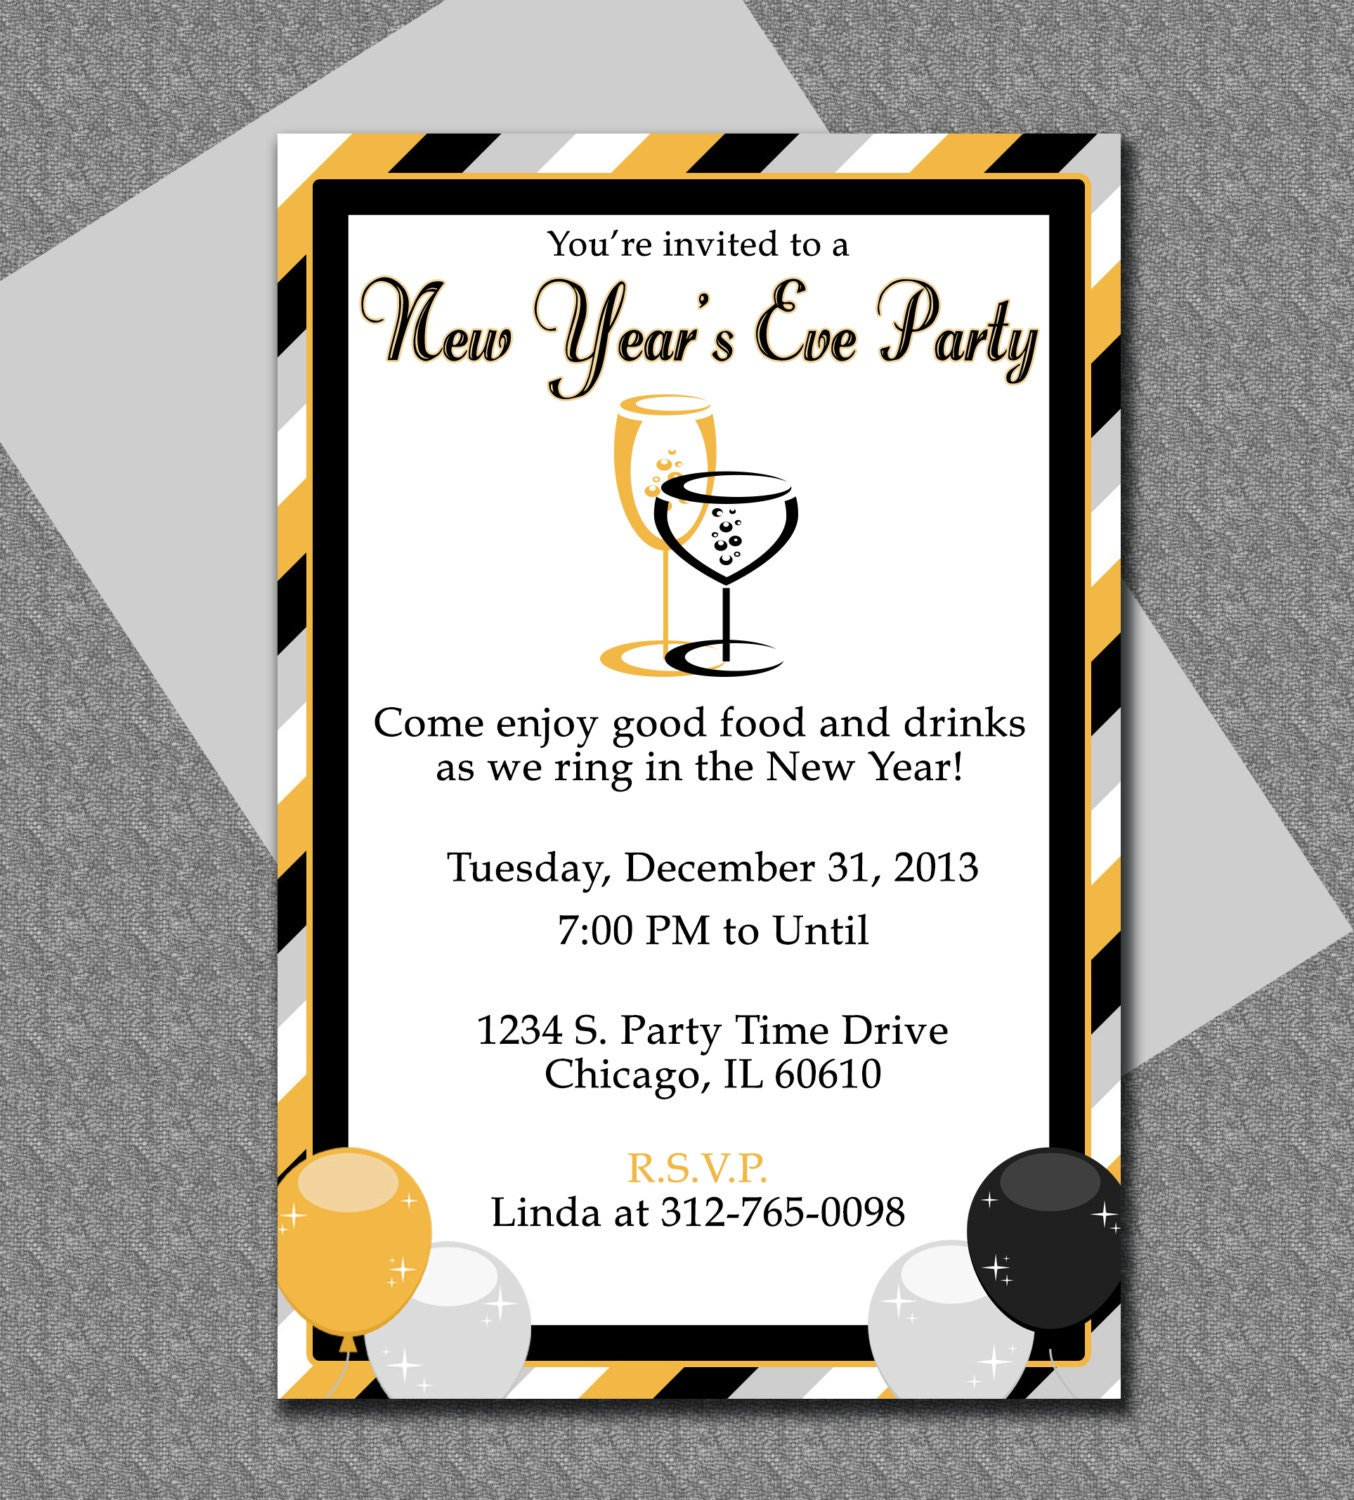 new year invite templates free - new years eve party invitation editable template